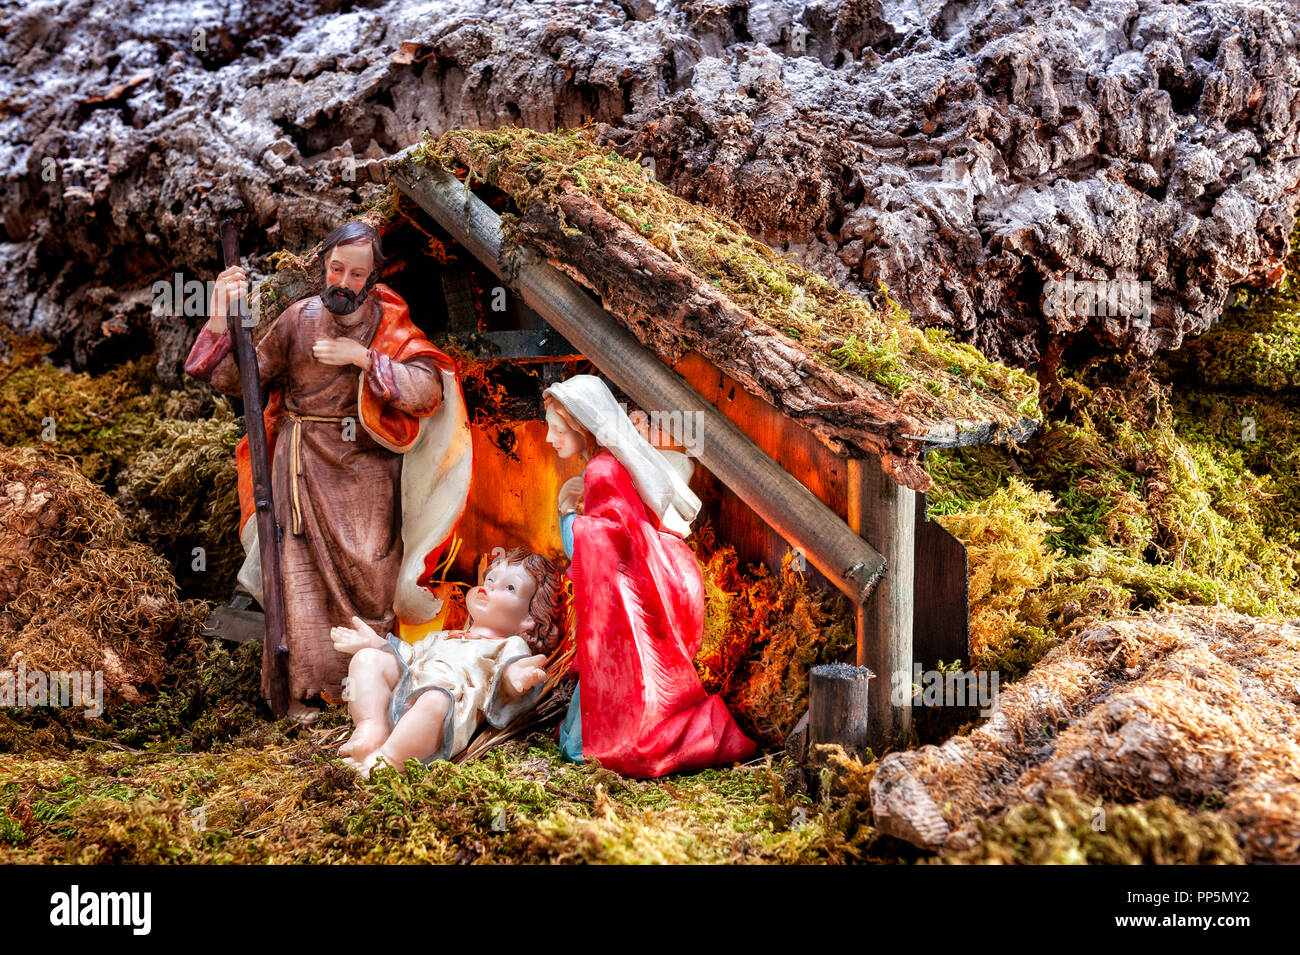 Close-up of the Christmas Nativity scene. Hut with baby Jesus in the manger, with Mary and Joseph. Stock Photo